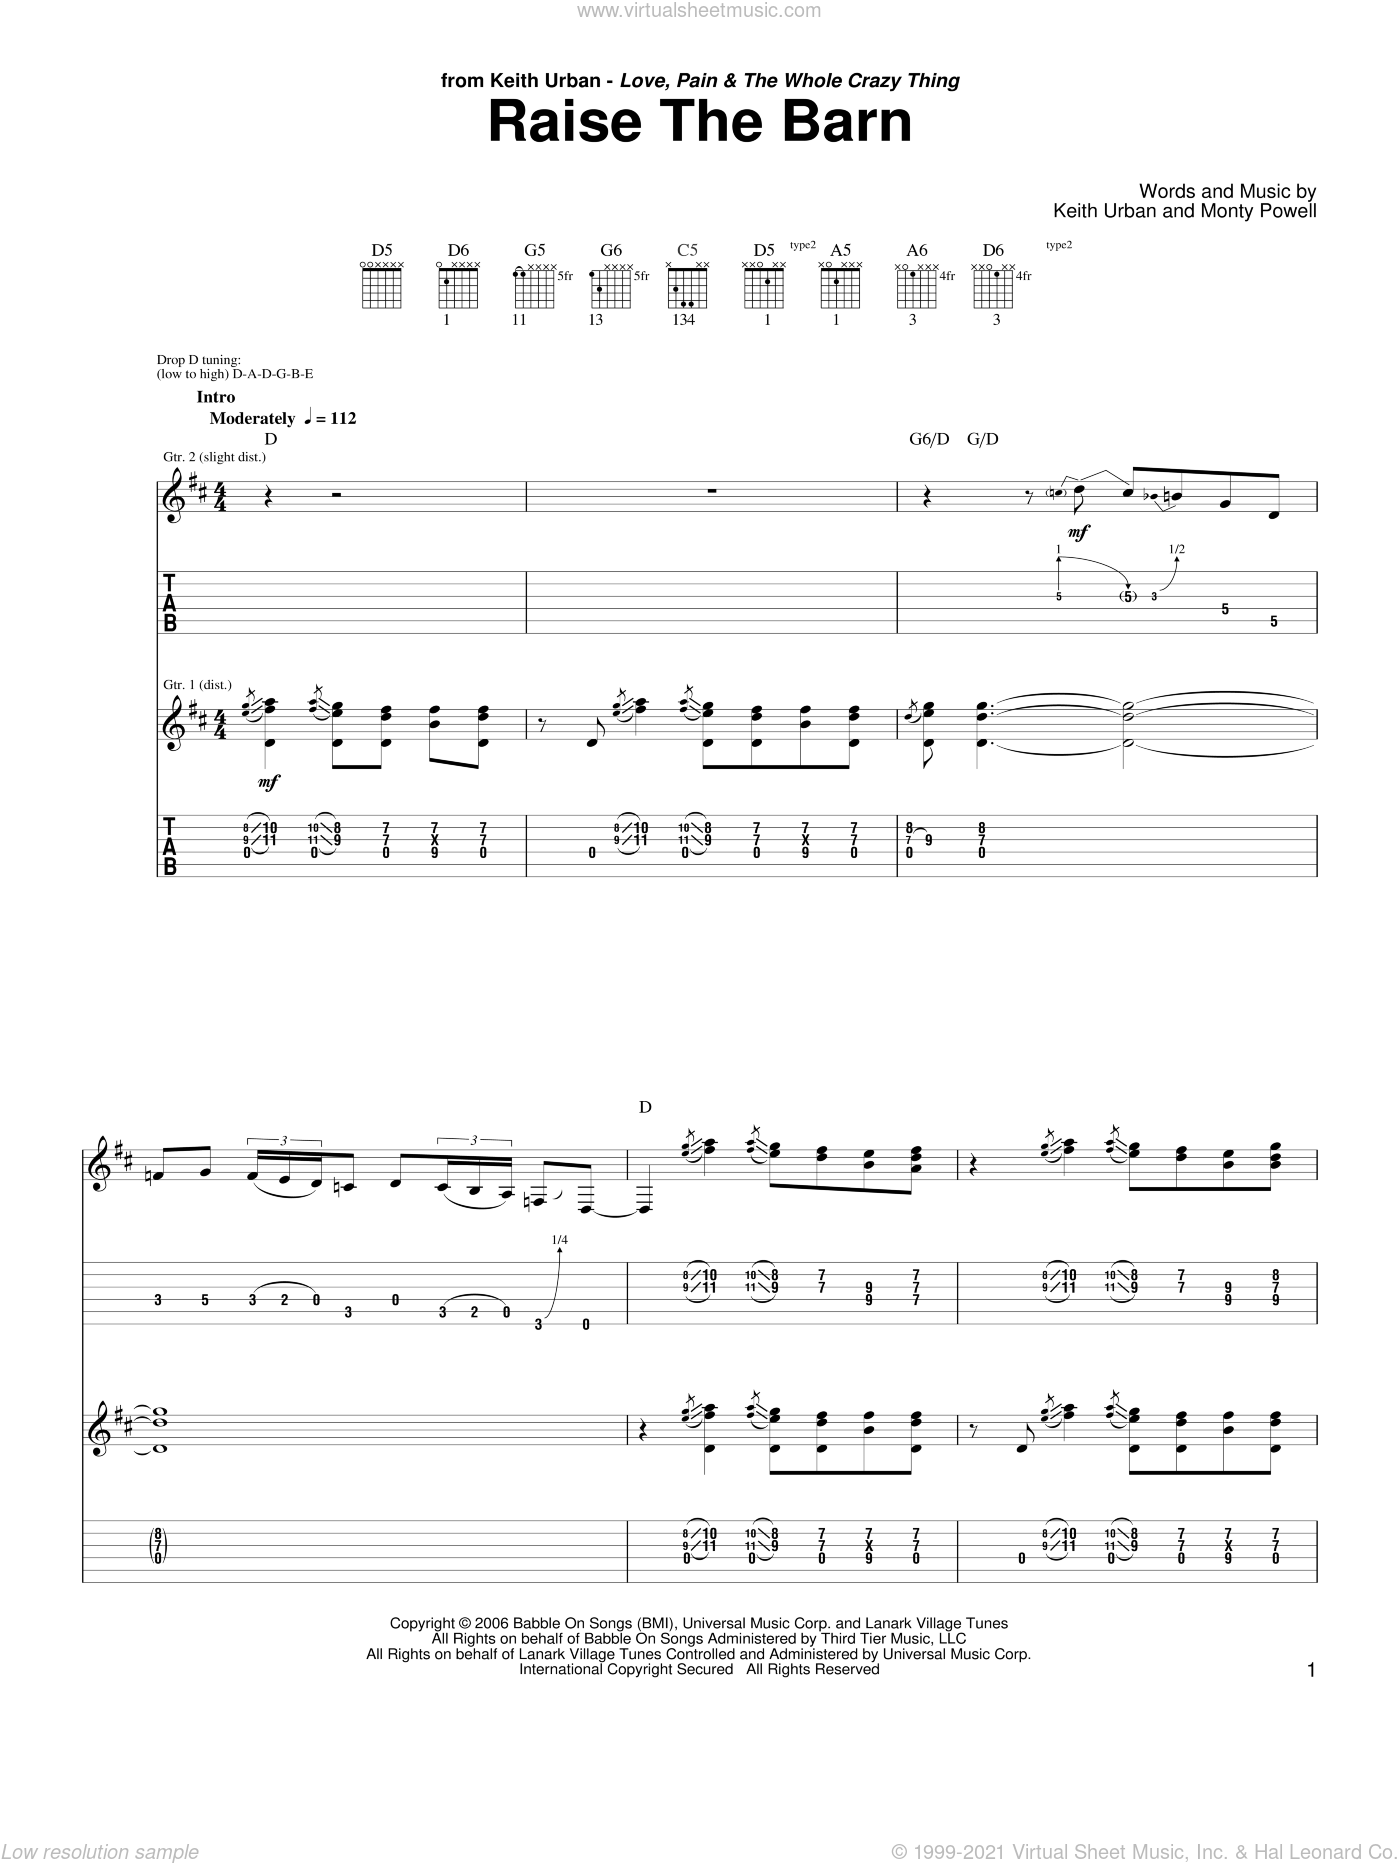 Raise The Barn sheet music for guitar (tablature) by Monty Powell